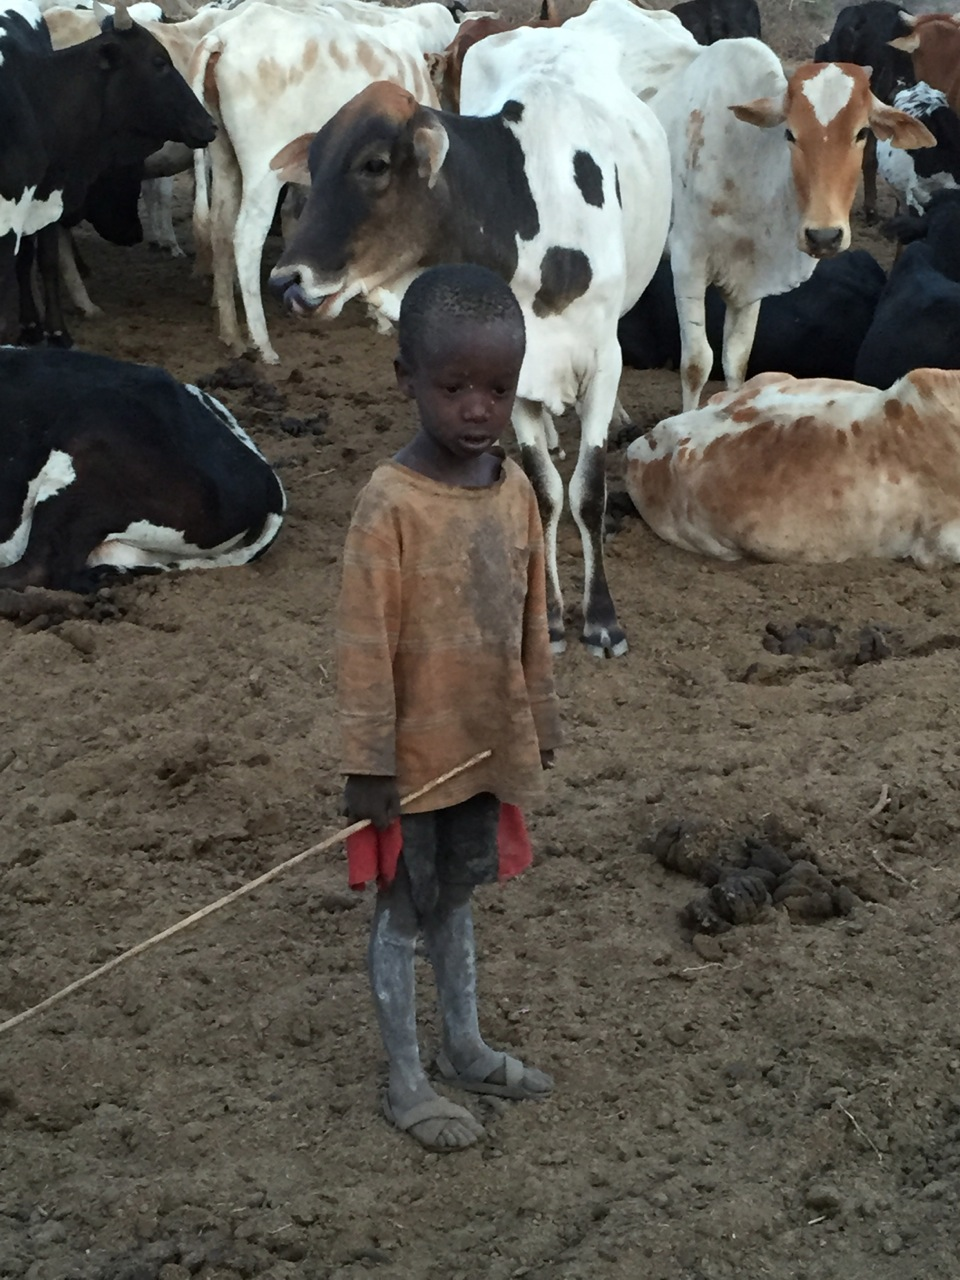 A Masai child standing amongst cattle and cow dung in the middle of his village in the foothills of Mt. Kilimanjaro.